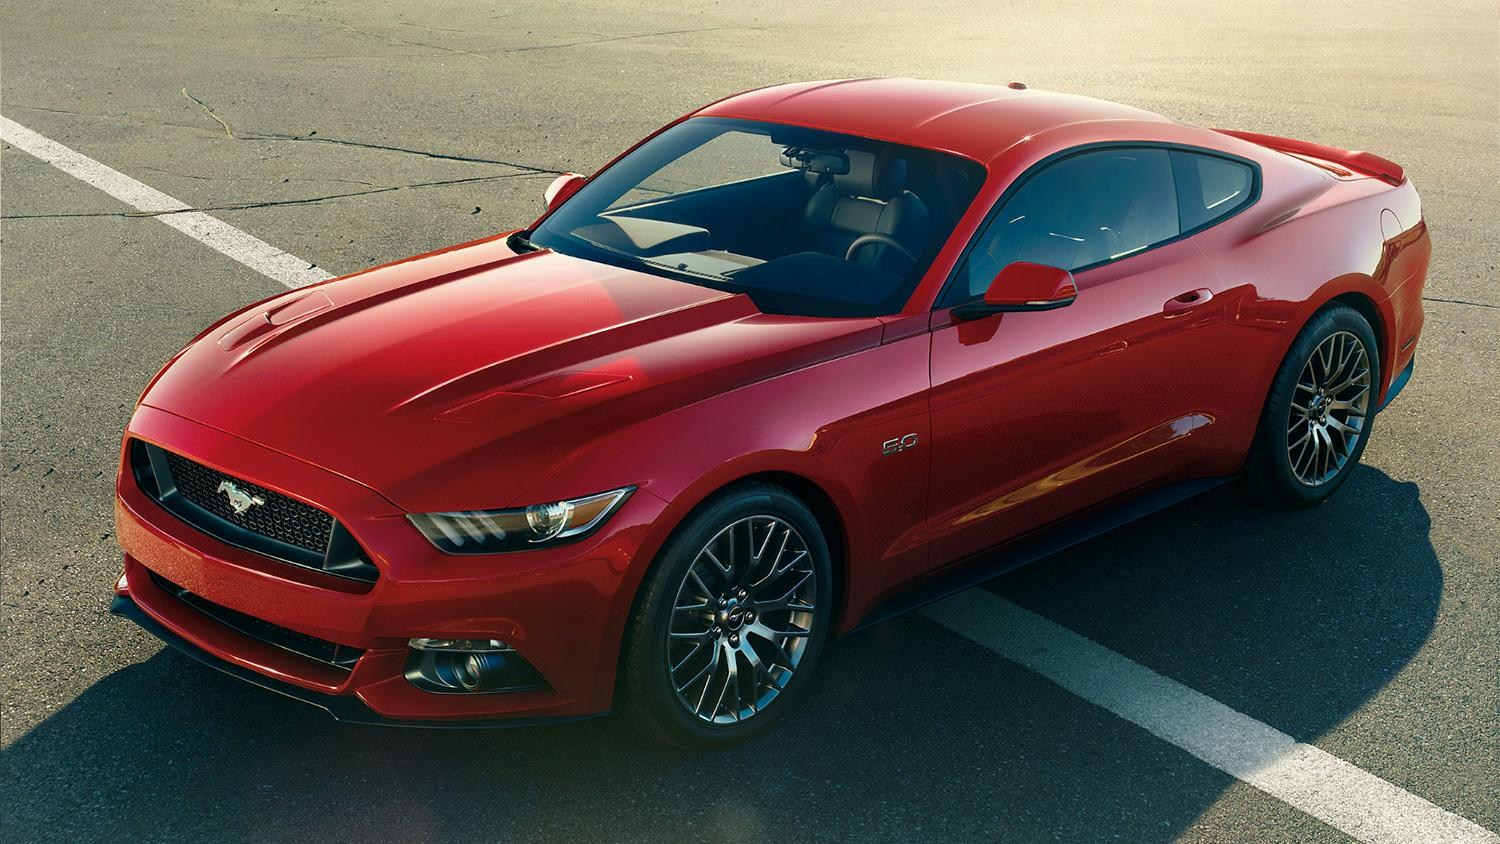 2015 Ford Mustang Awesome Wallpapers myCarsUpdate 1500x844